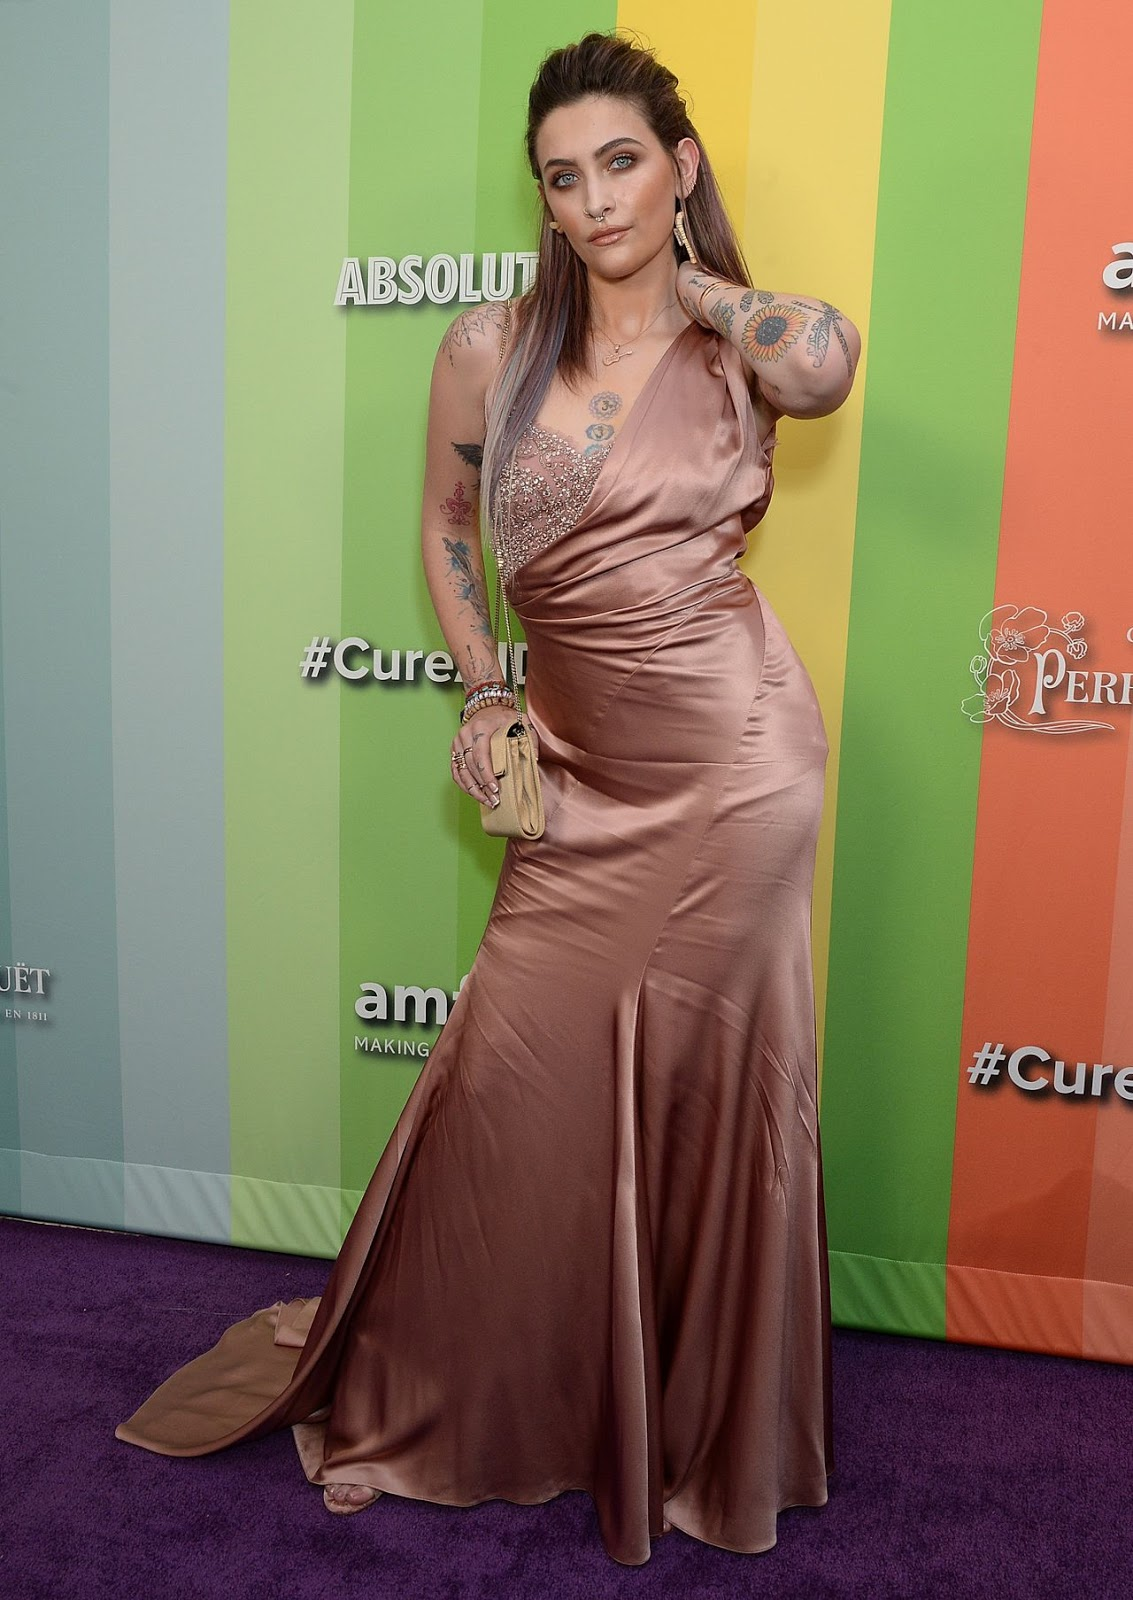 Paris Jackson dazzles in blush satin gown as she poses on the carpet at amFAR Gala